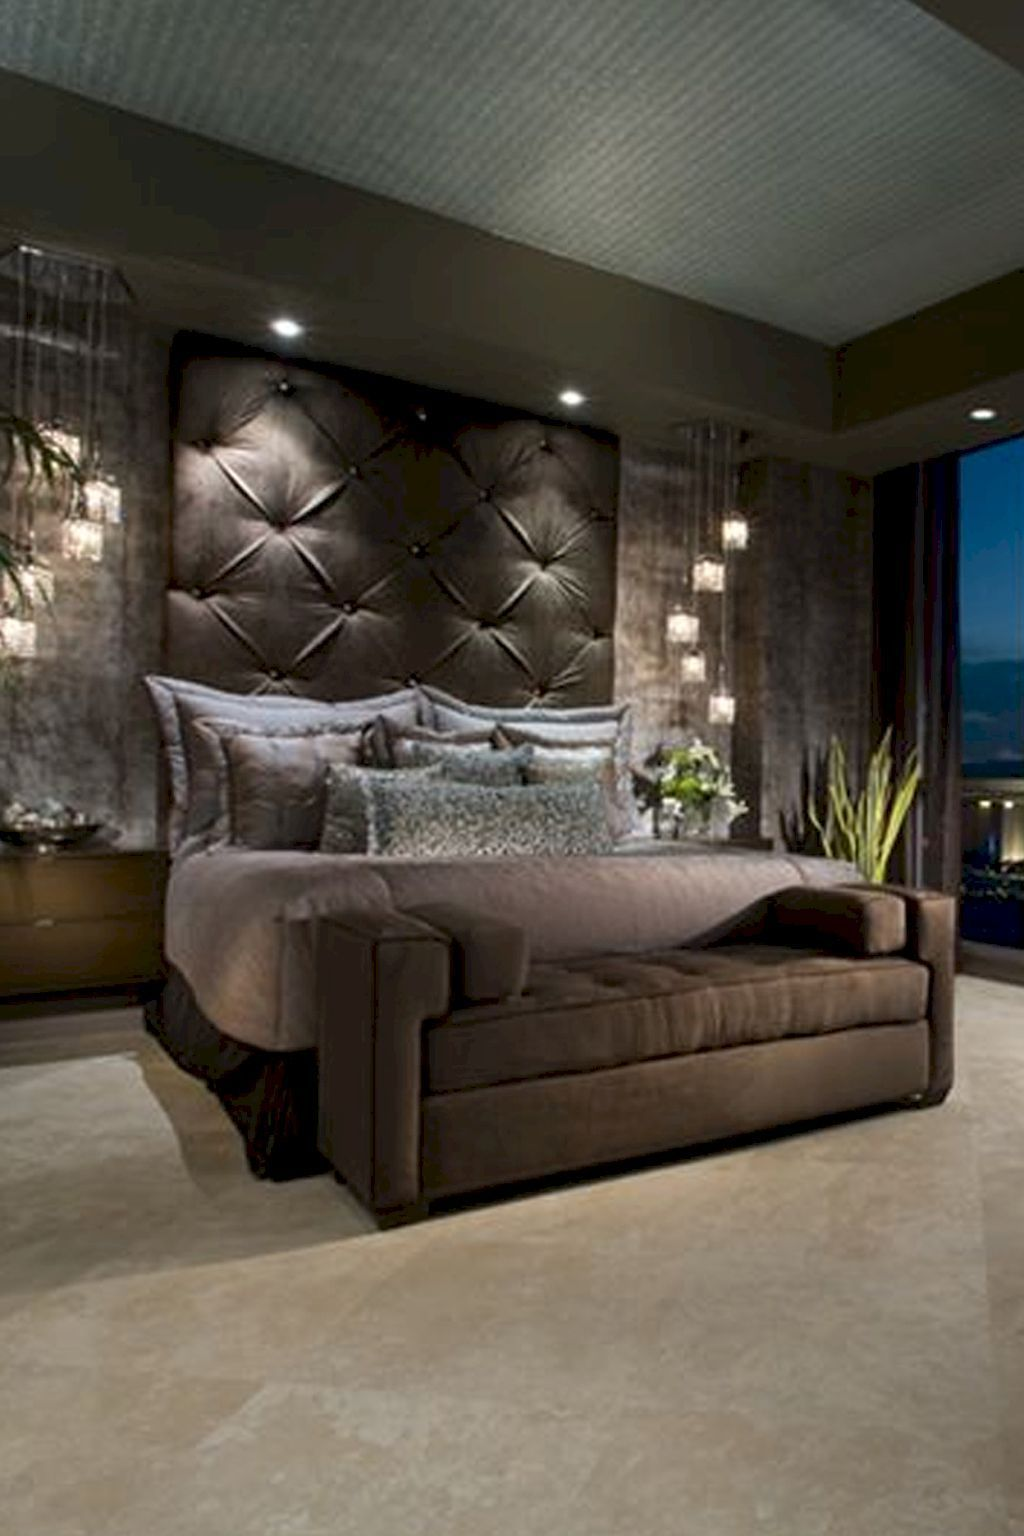 Elegant Romantic Bedrooms: 60 Romantic Master Bedroom Decor Ideas (54)